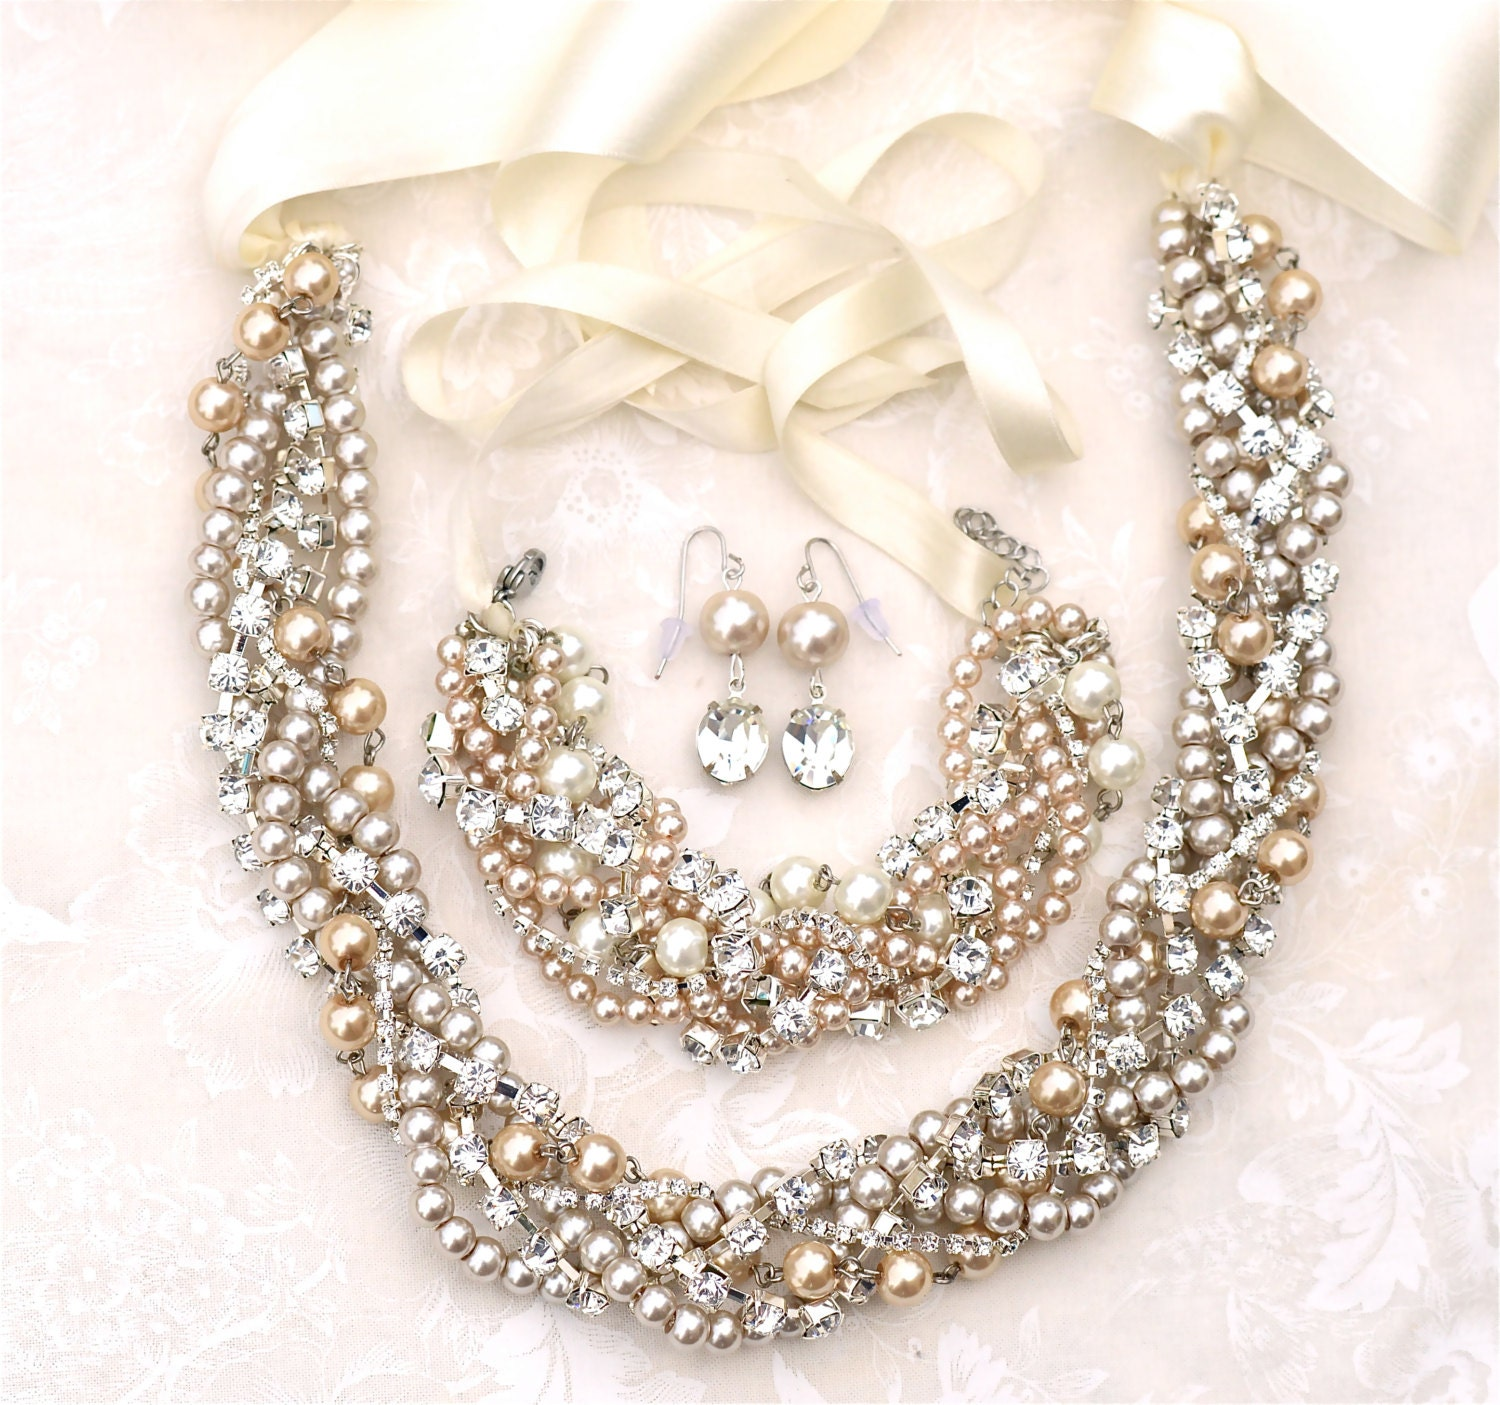 Pearl Jewellery Necklace >> Chunky Pearl Necklace Bracelet Earrings Set Champagne Pearl